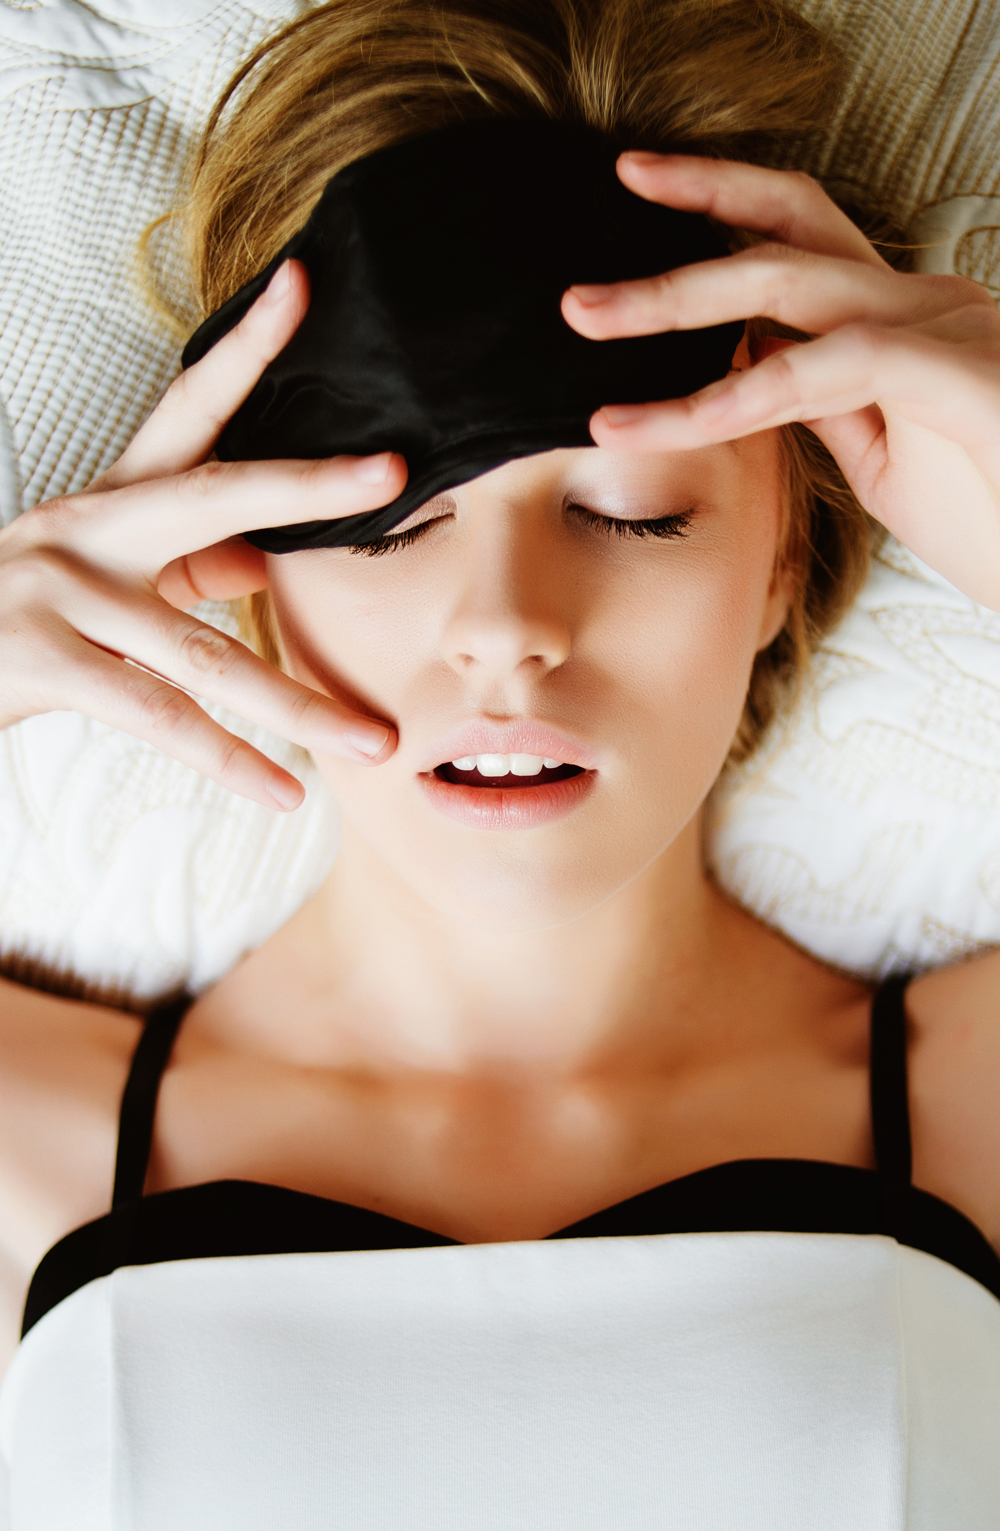 diet nutrition tips for better sleep fashion models beauty health secrets from nutrionist fashionedbylove fashionblog 83154